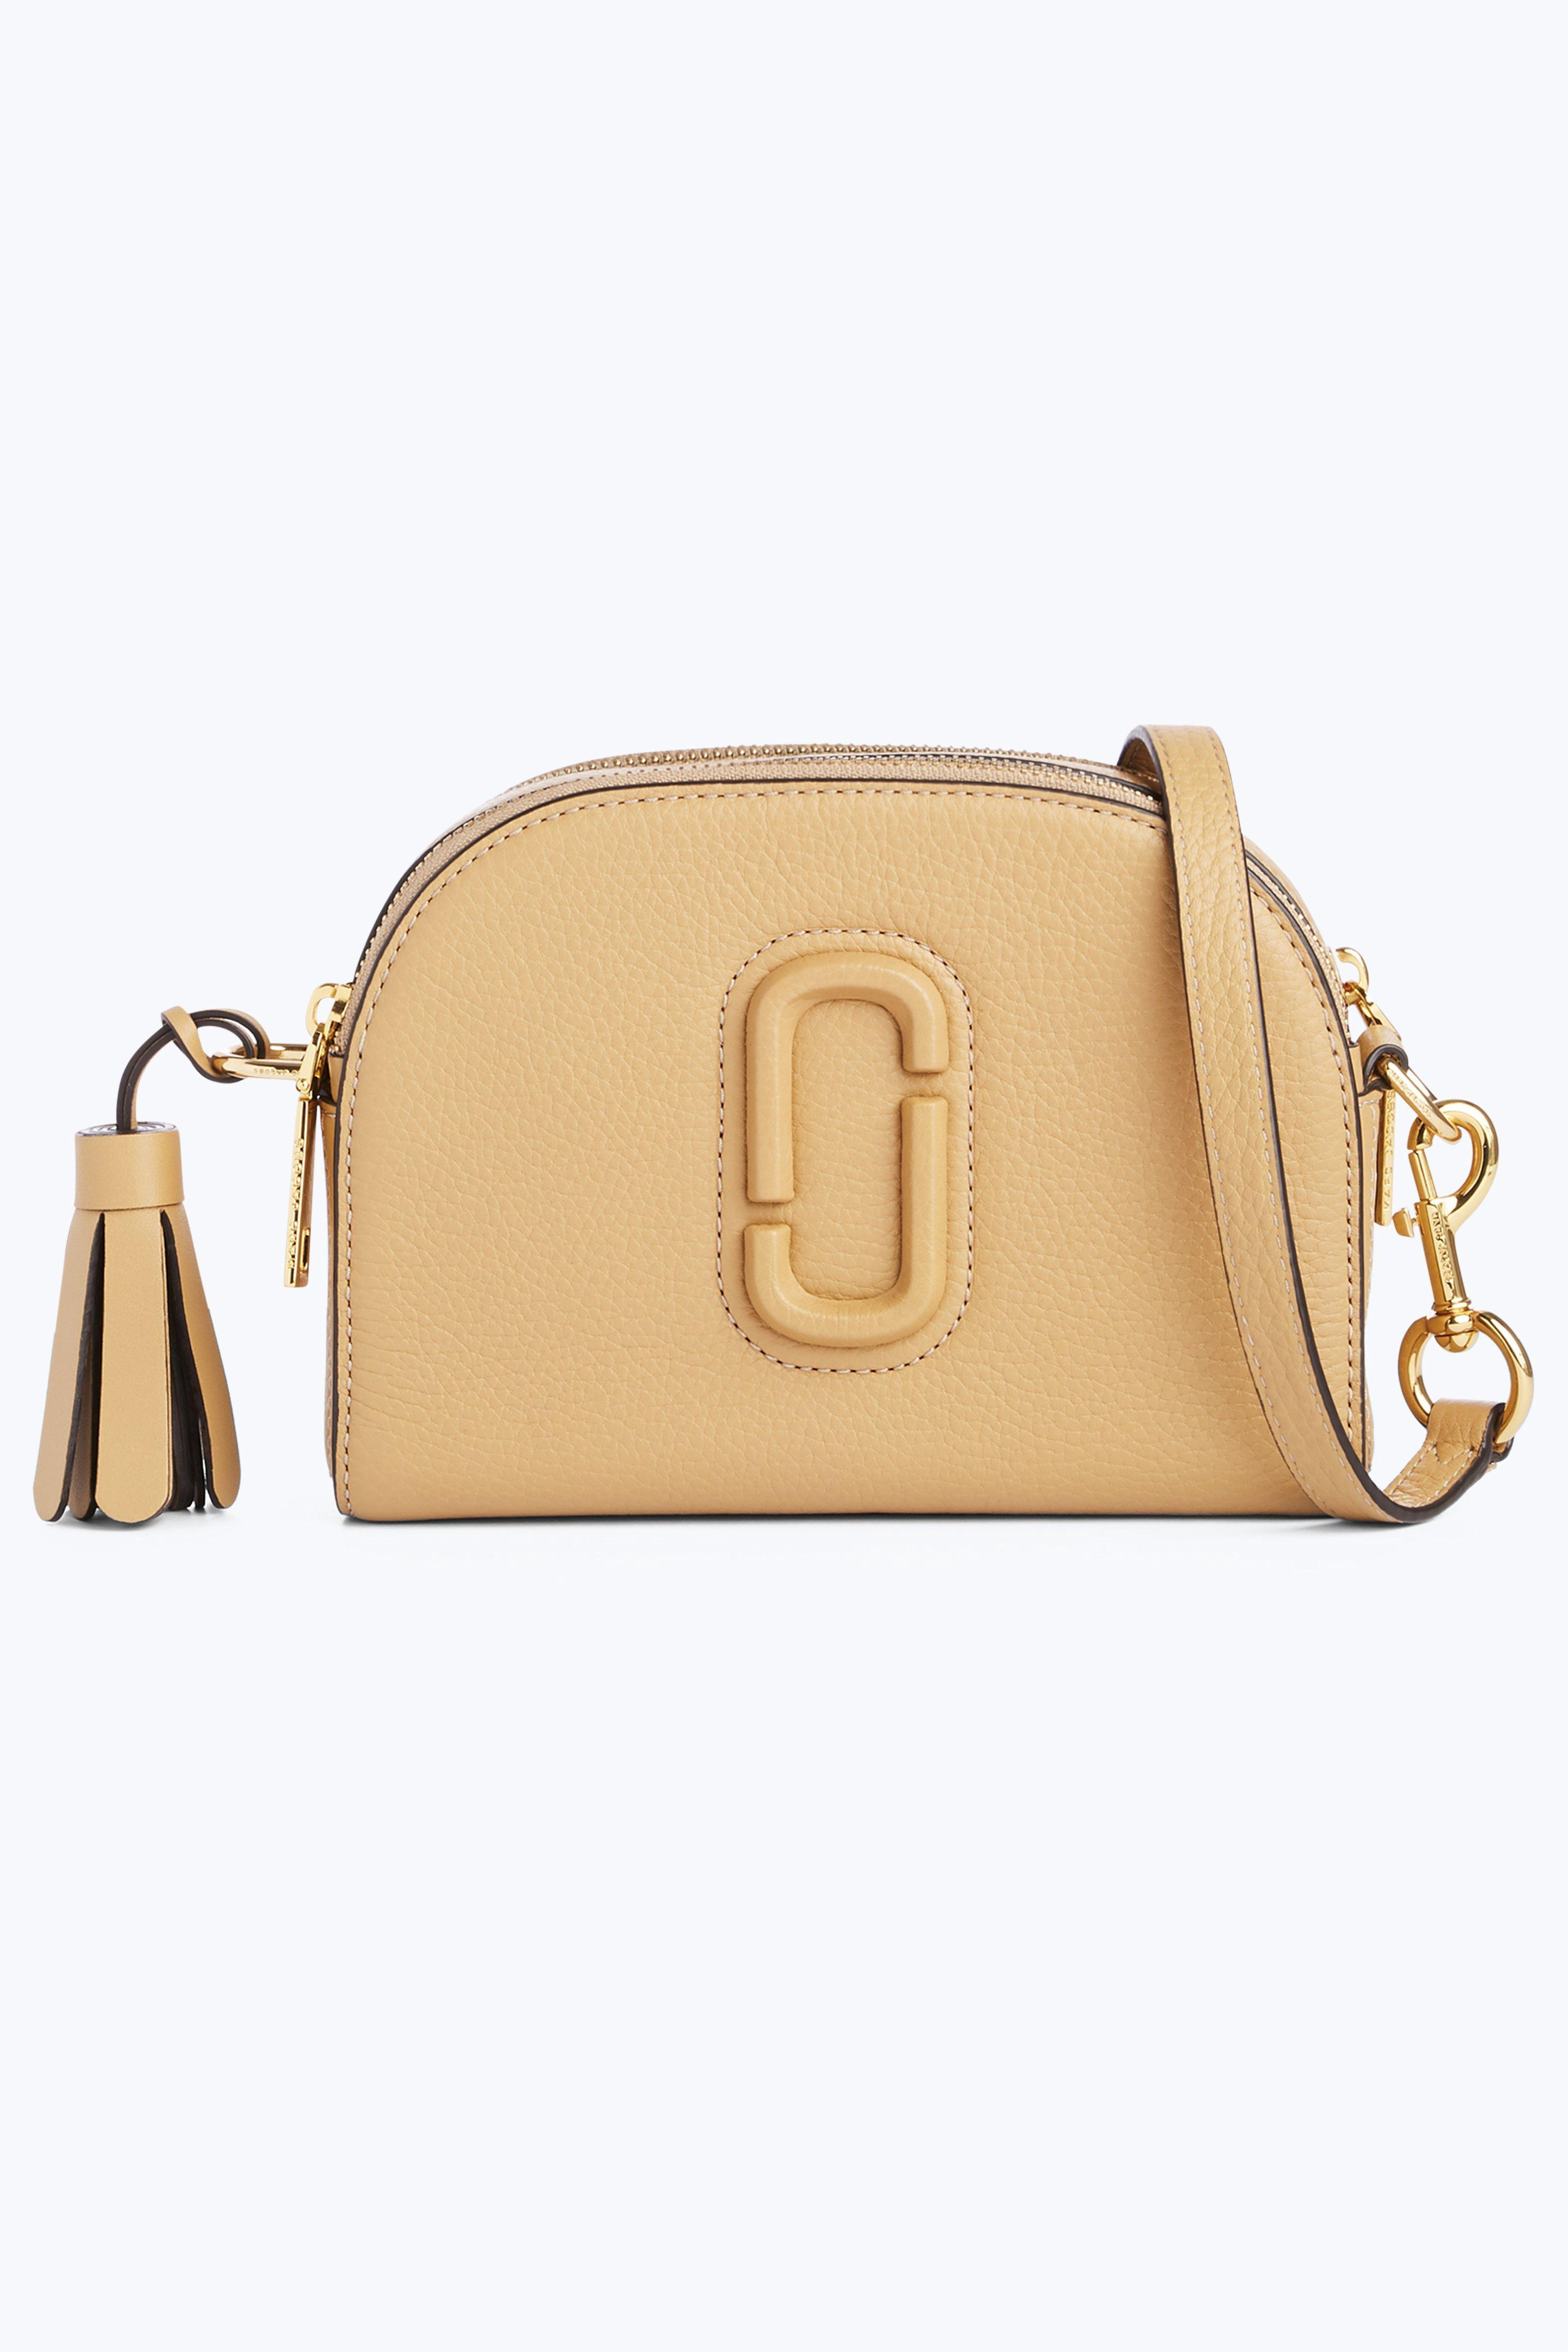 a1c068076c63 Marc Jacobs Shutter Golden Beige Leather Small Camera Bag